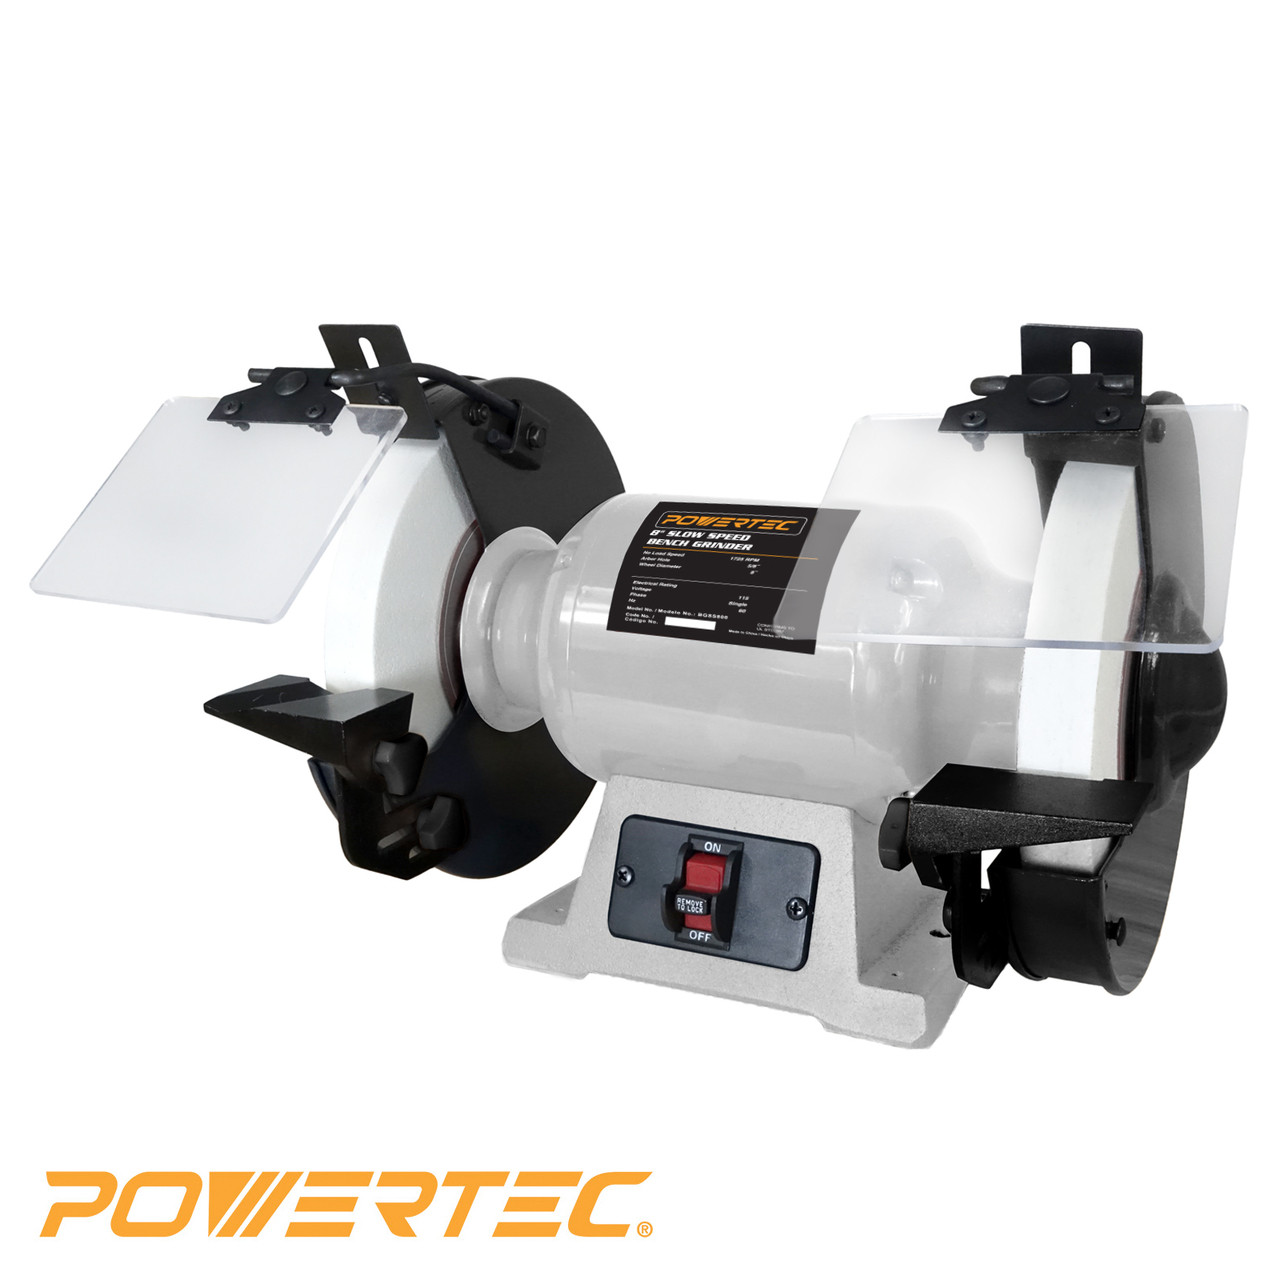 Bgss801 Slow Speed Bench Grinder 8 Inch Powertec